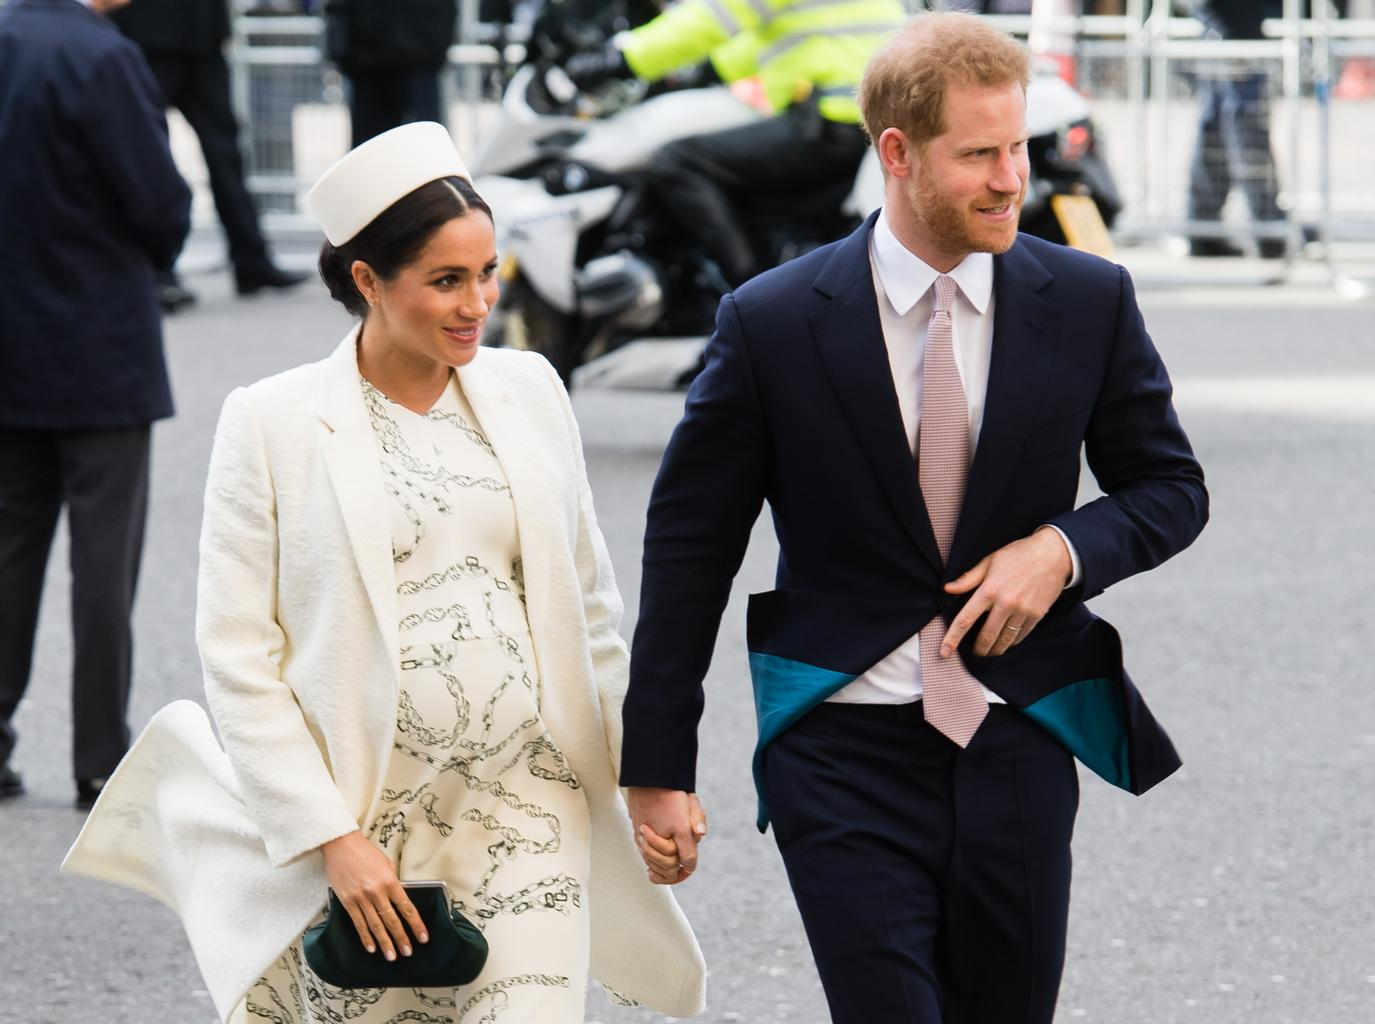 Prince Harry and Meghan Markle split from Prince William and Kate Middleton